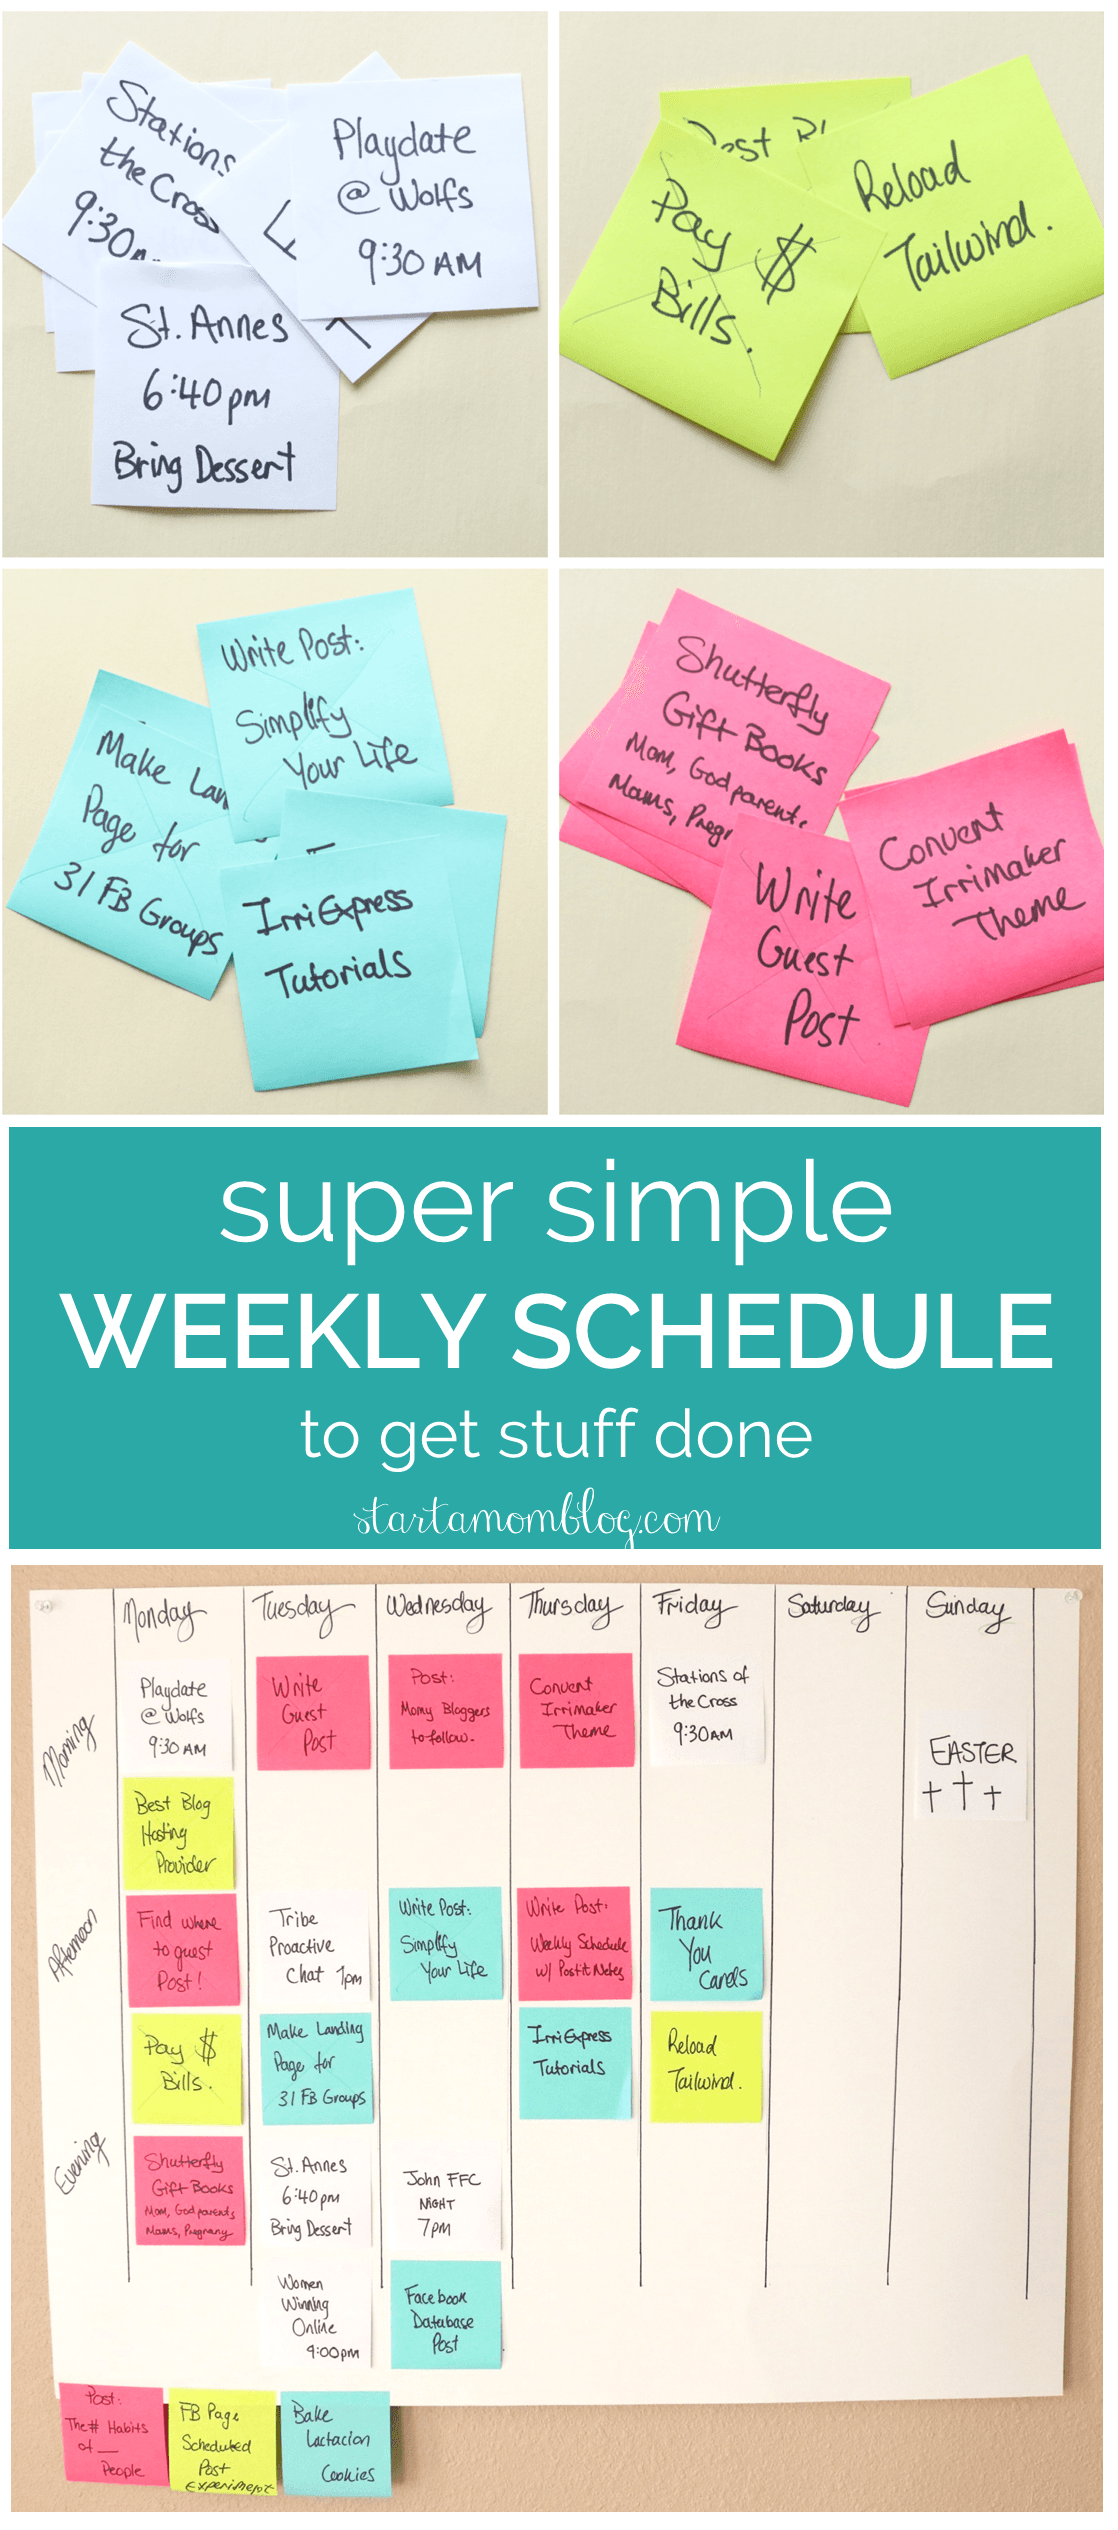 Super Simply Weekly Schedule to Get Stuff Done